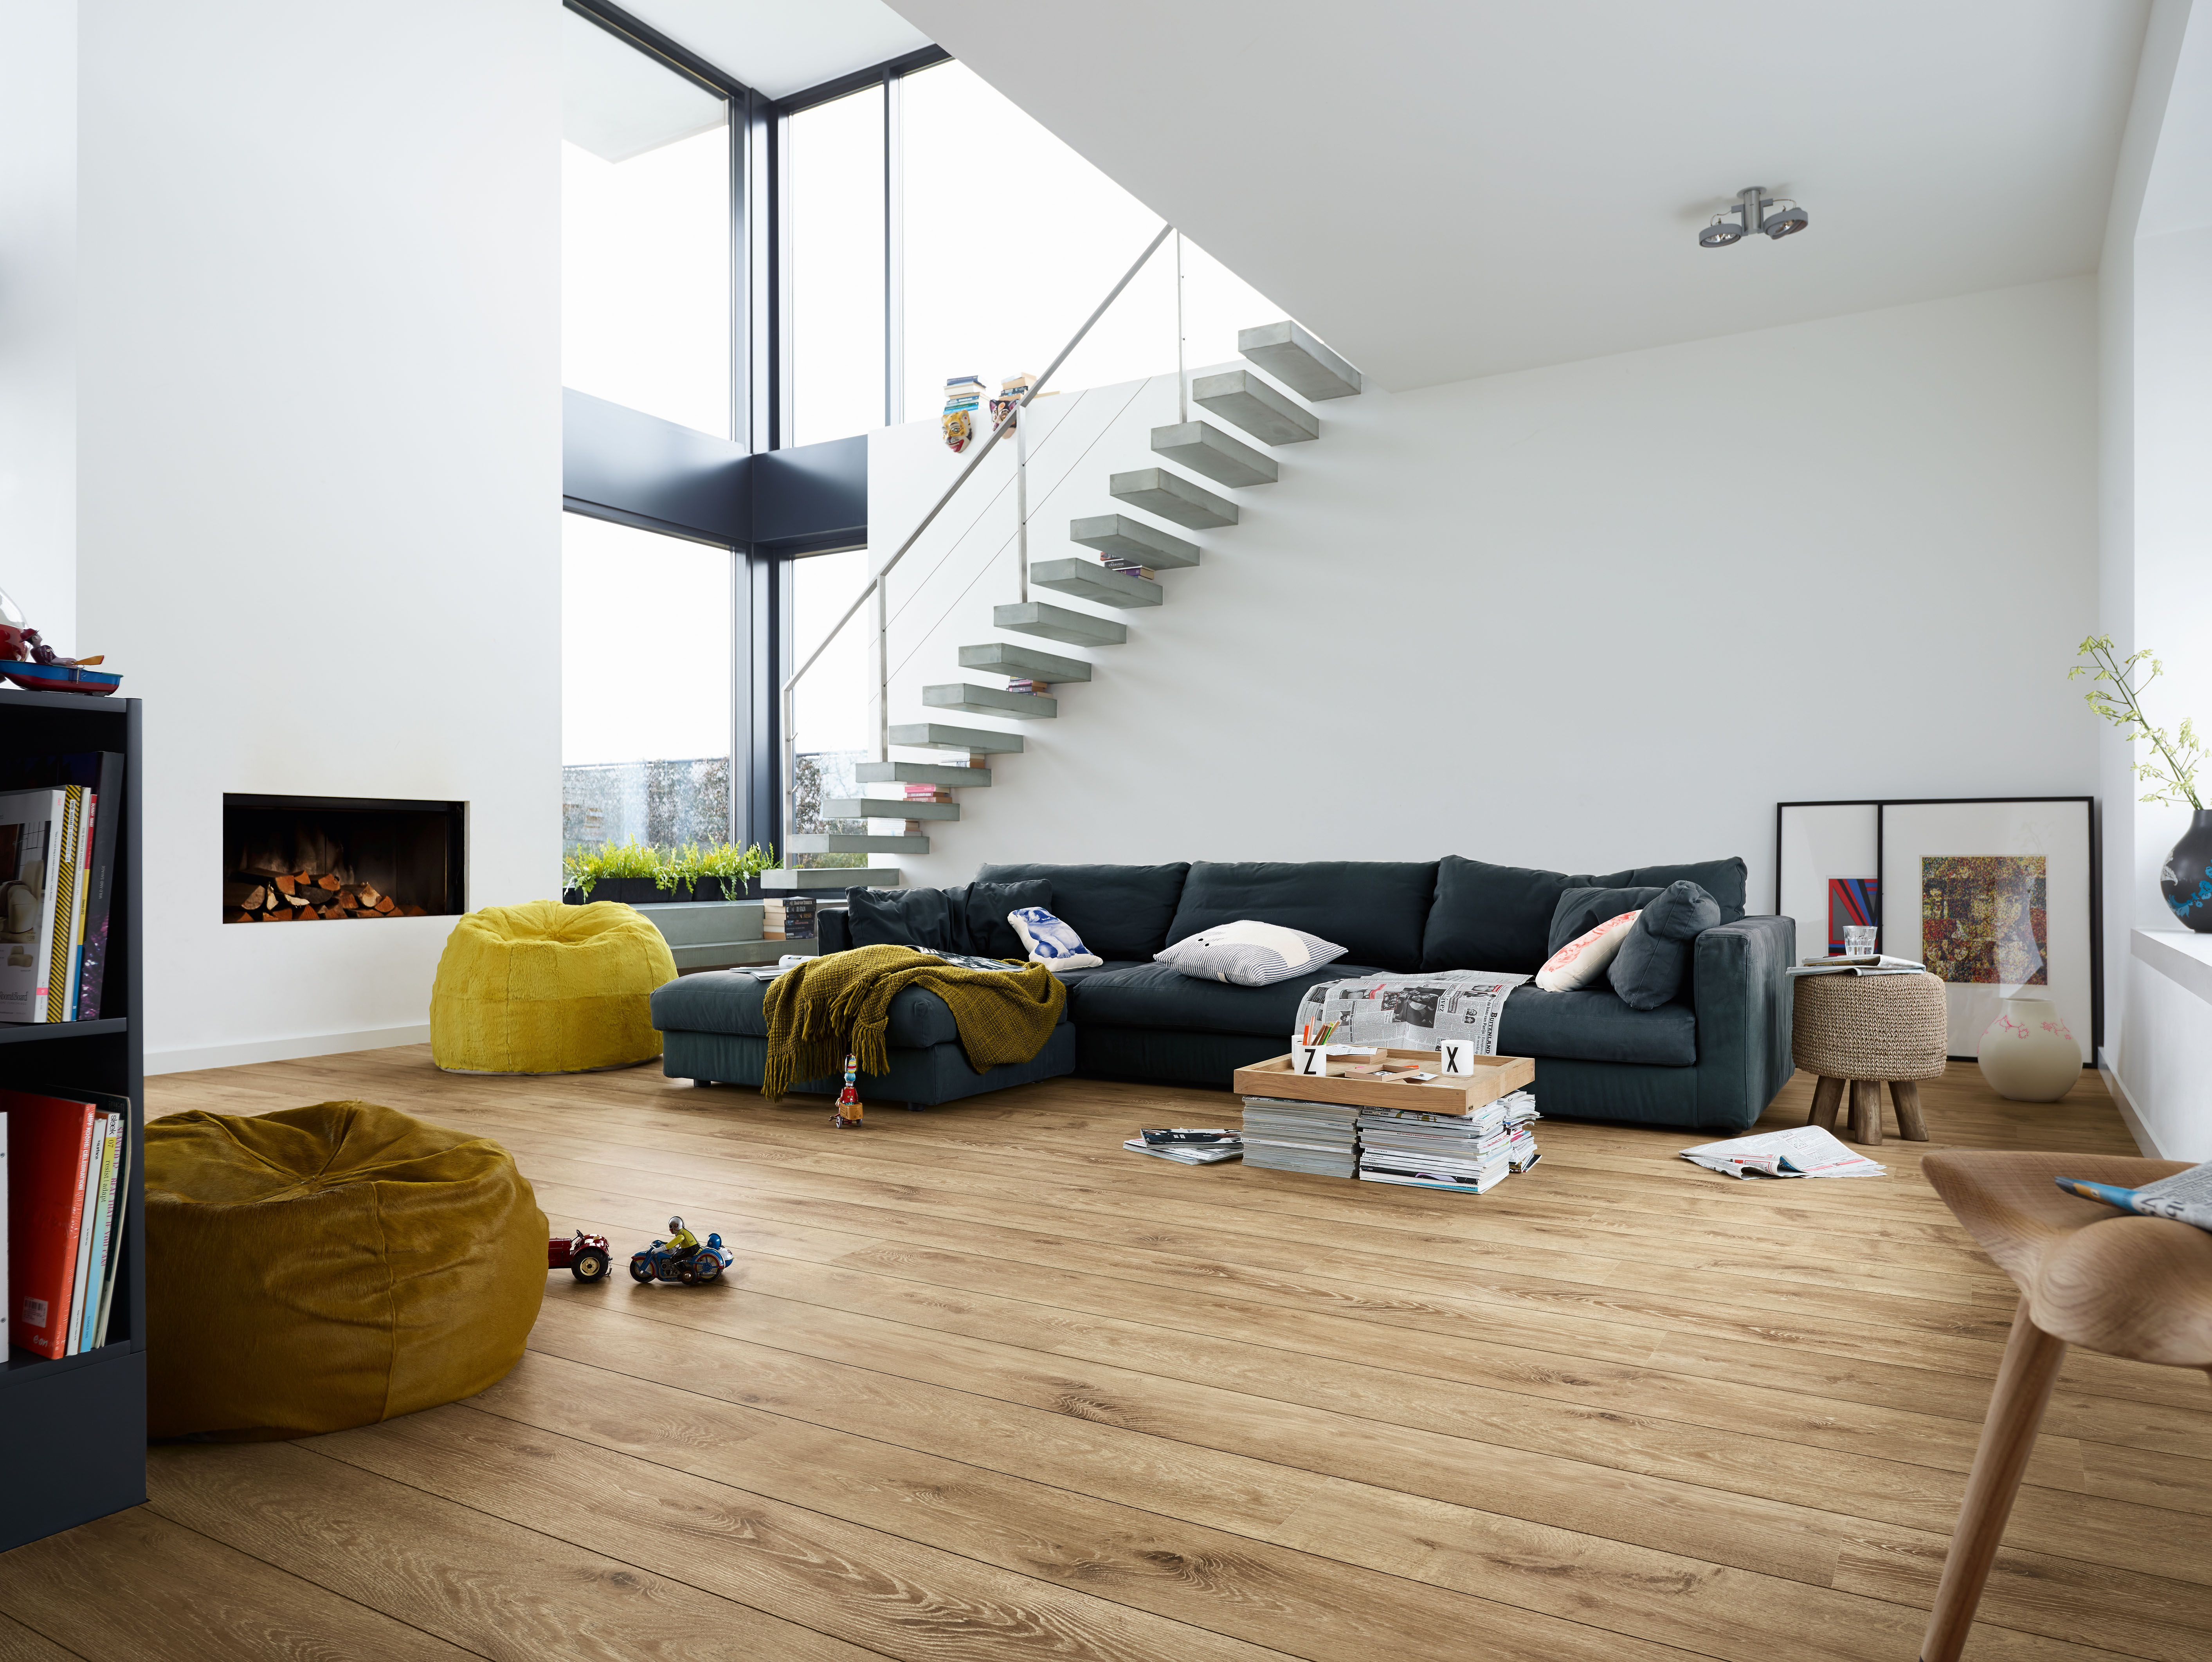 Barolo Laminate Flooring From Meister In Natural Vintage Oak   Wonderfully  Warn Hues And Medium Toned Graining Combine With A Deep Embossed Surface  For A ...